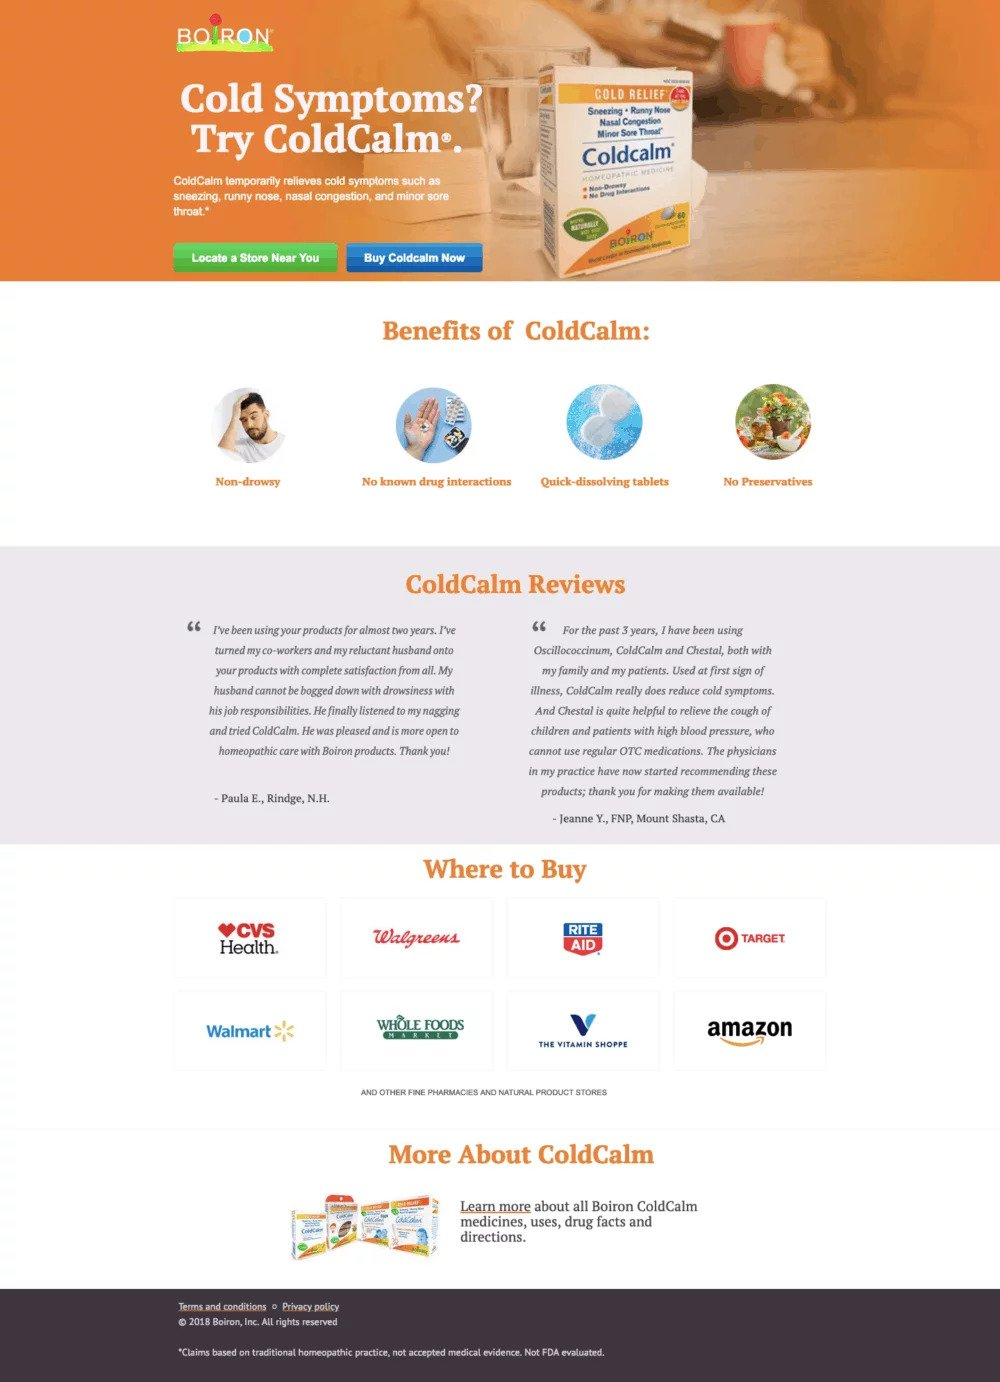 example of landing page optimization from coldcalm